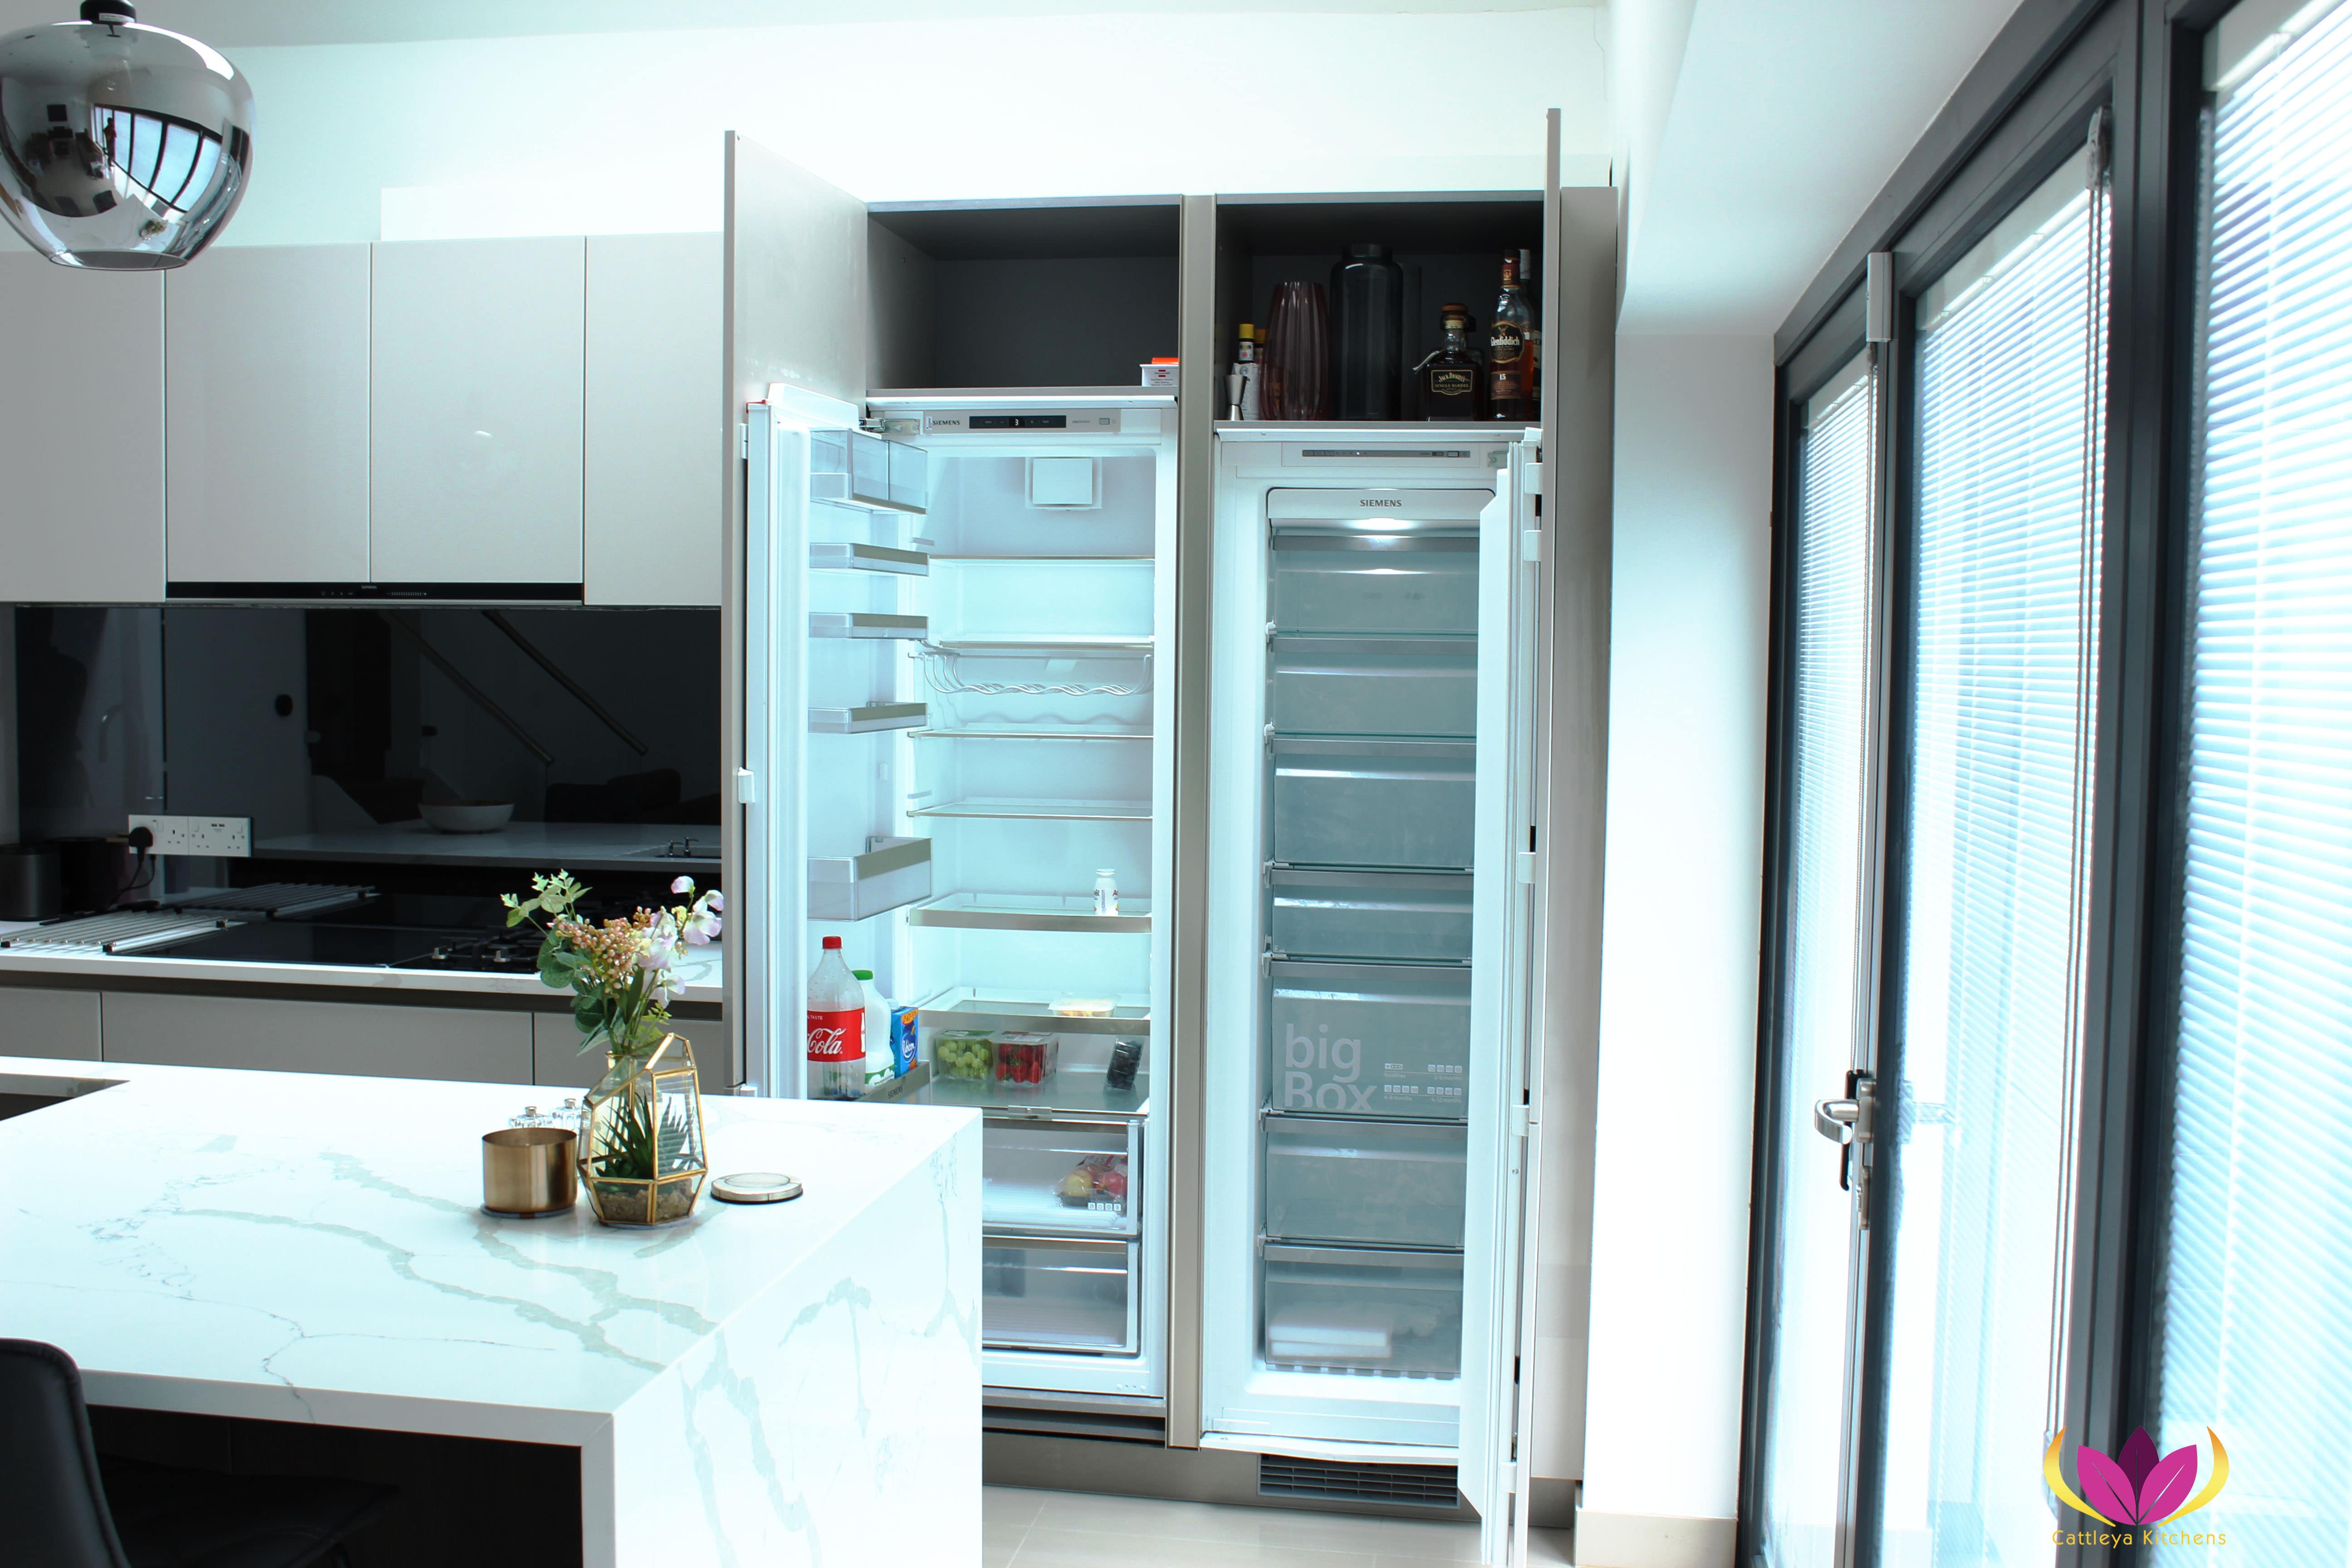 Hidden fridge in tall cabinet units - Greenford Finished Kitchen Project